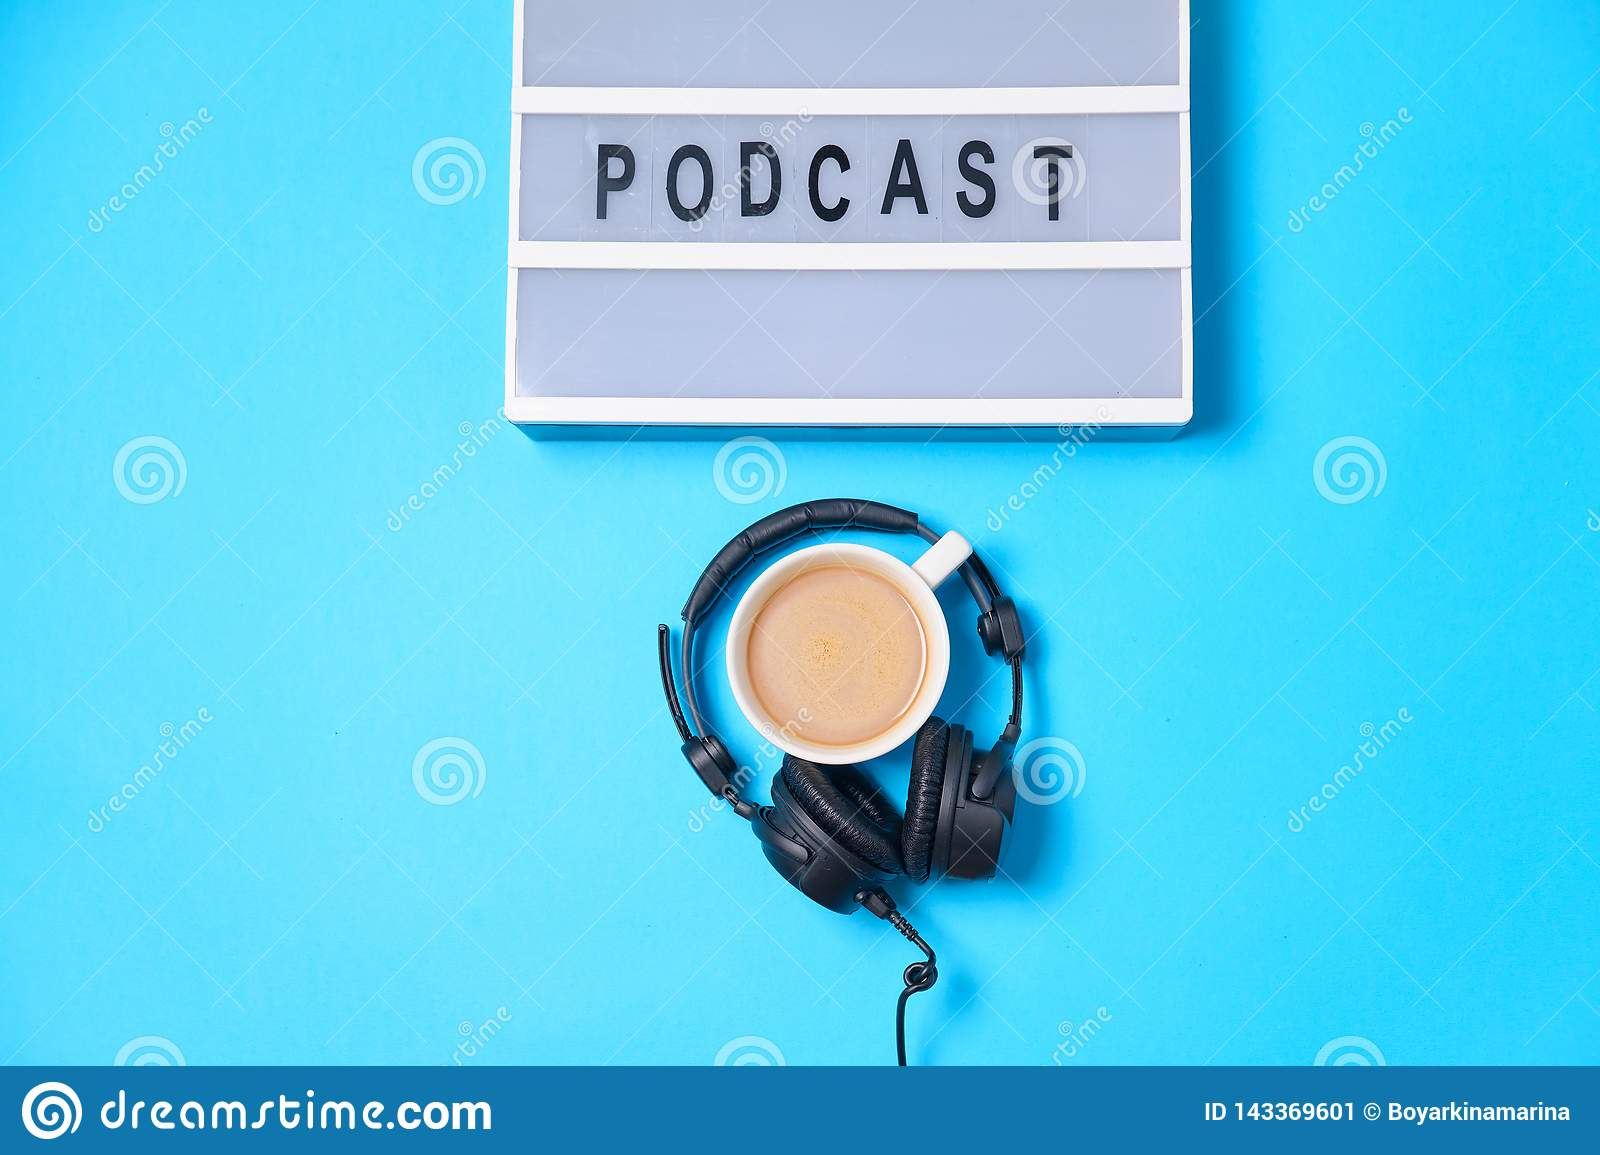 Music background with Podcast word on lightbox, headphones and cup of coffee on blue table, flat lay. Top view, flat lay, space